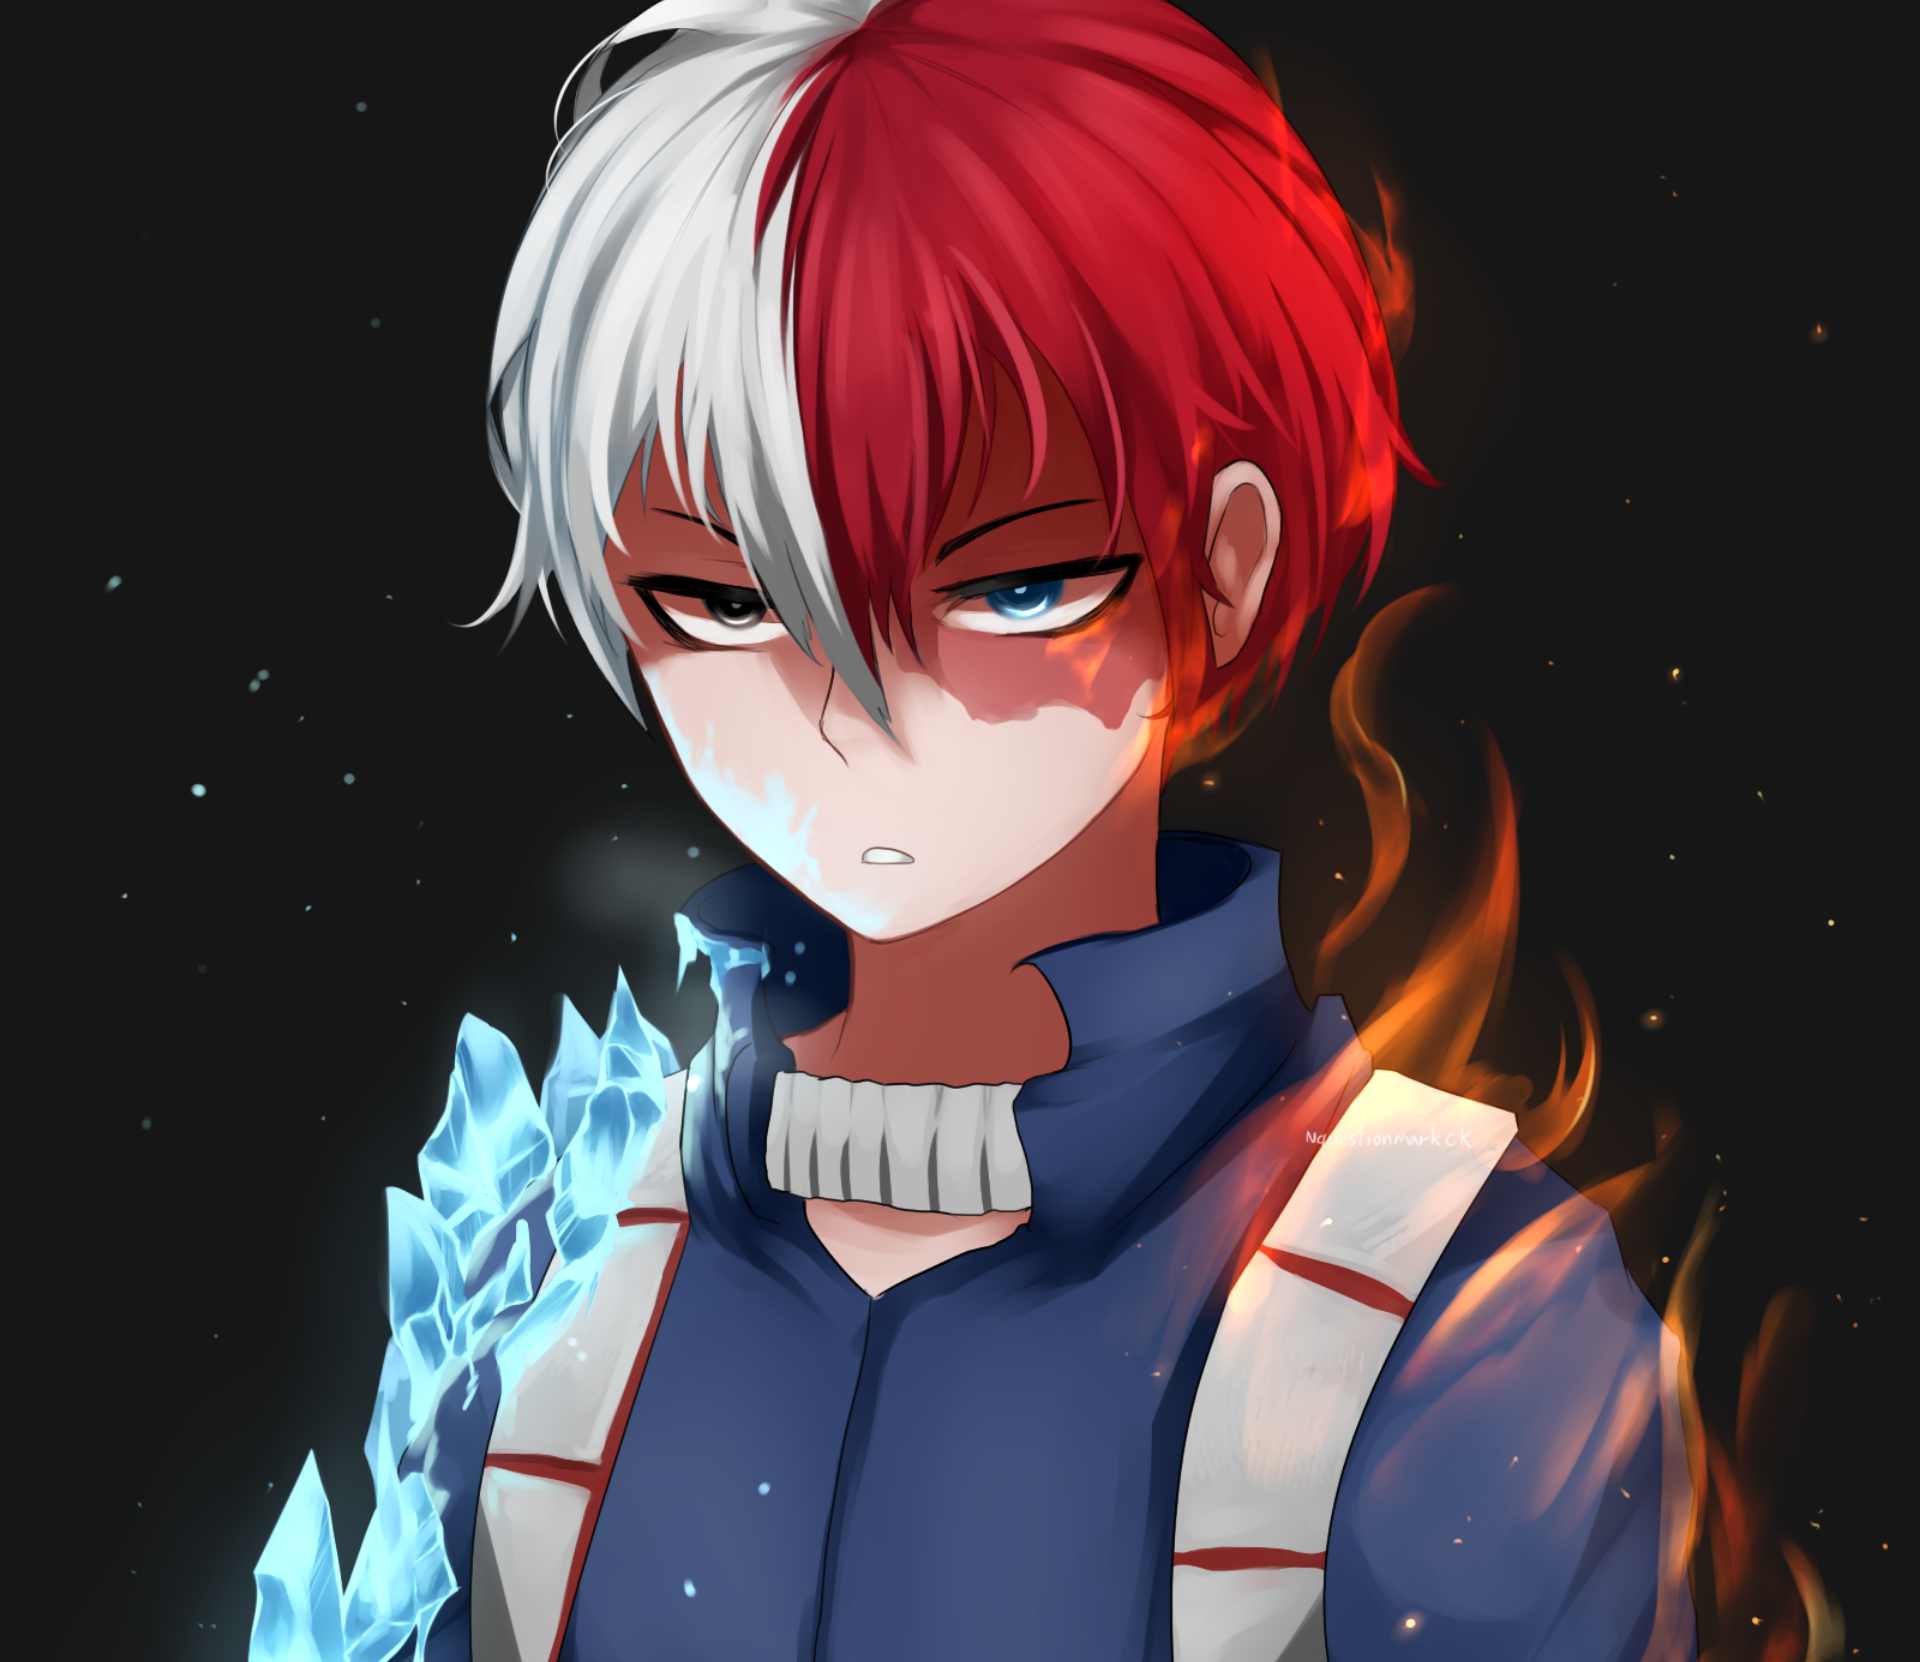 4k Todoroki Wallpapers Desktop Iphone And Android The